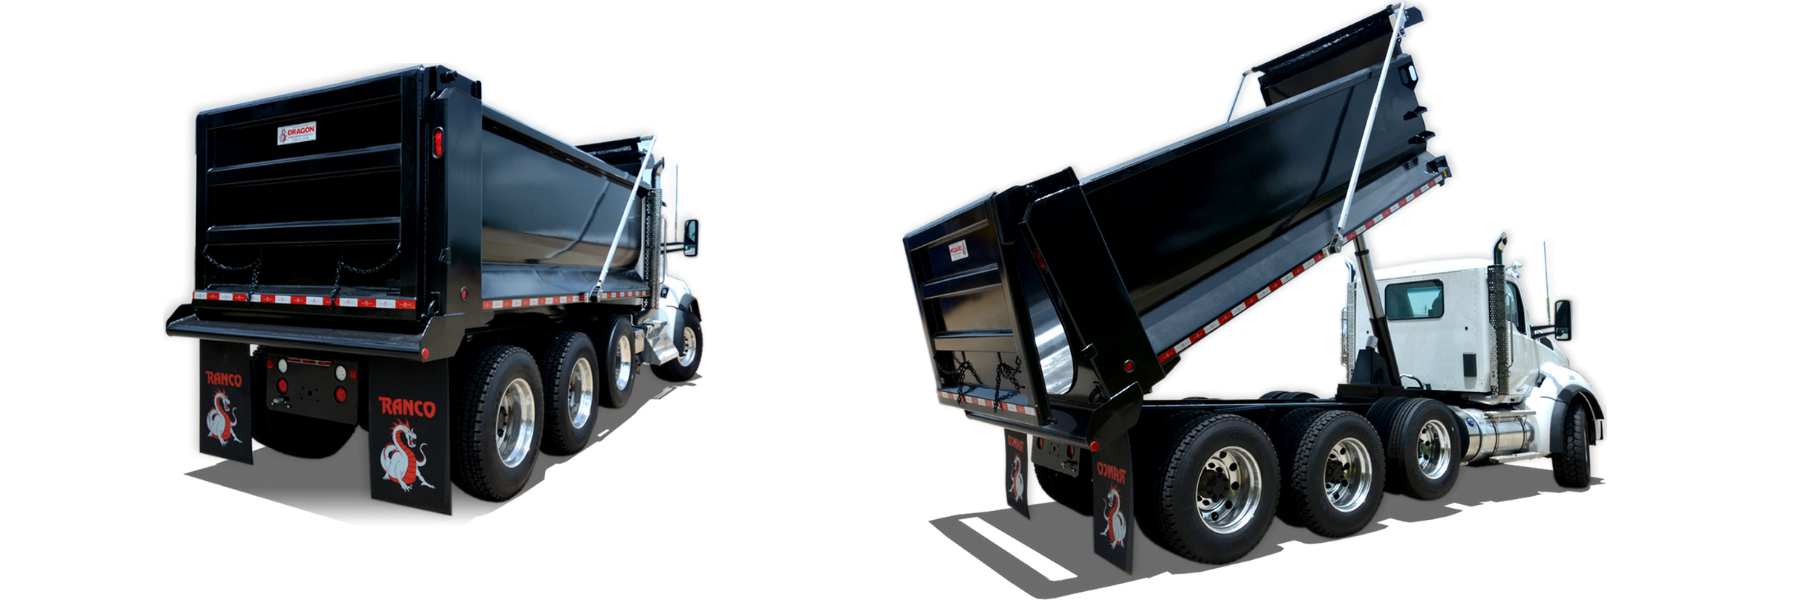 Ranco Dump Body Trailer